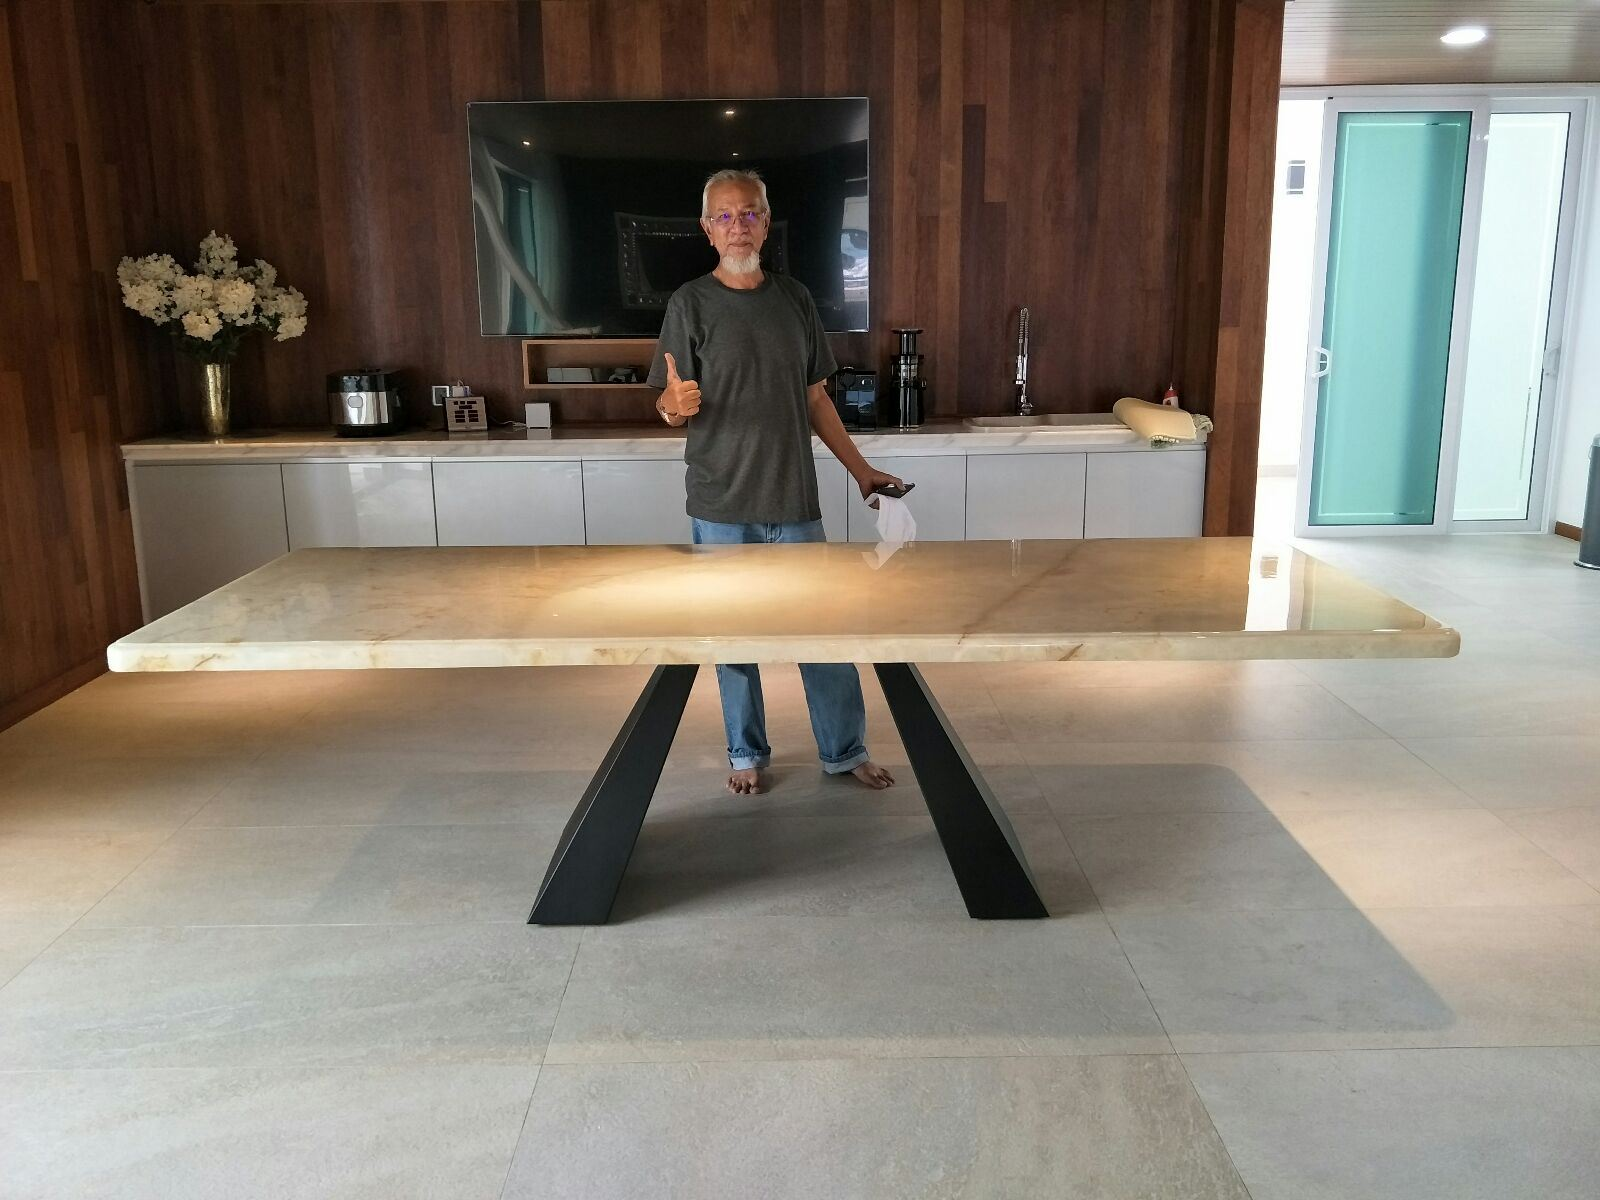 Onyx Dining Table From Turkey